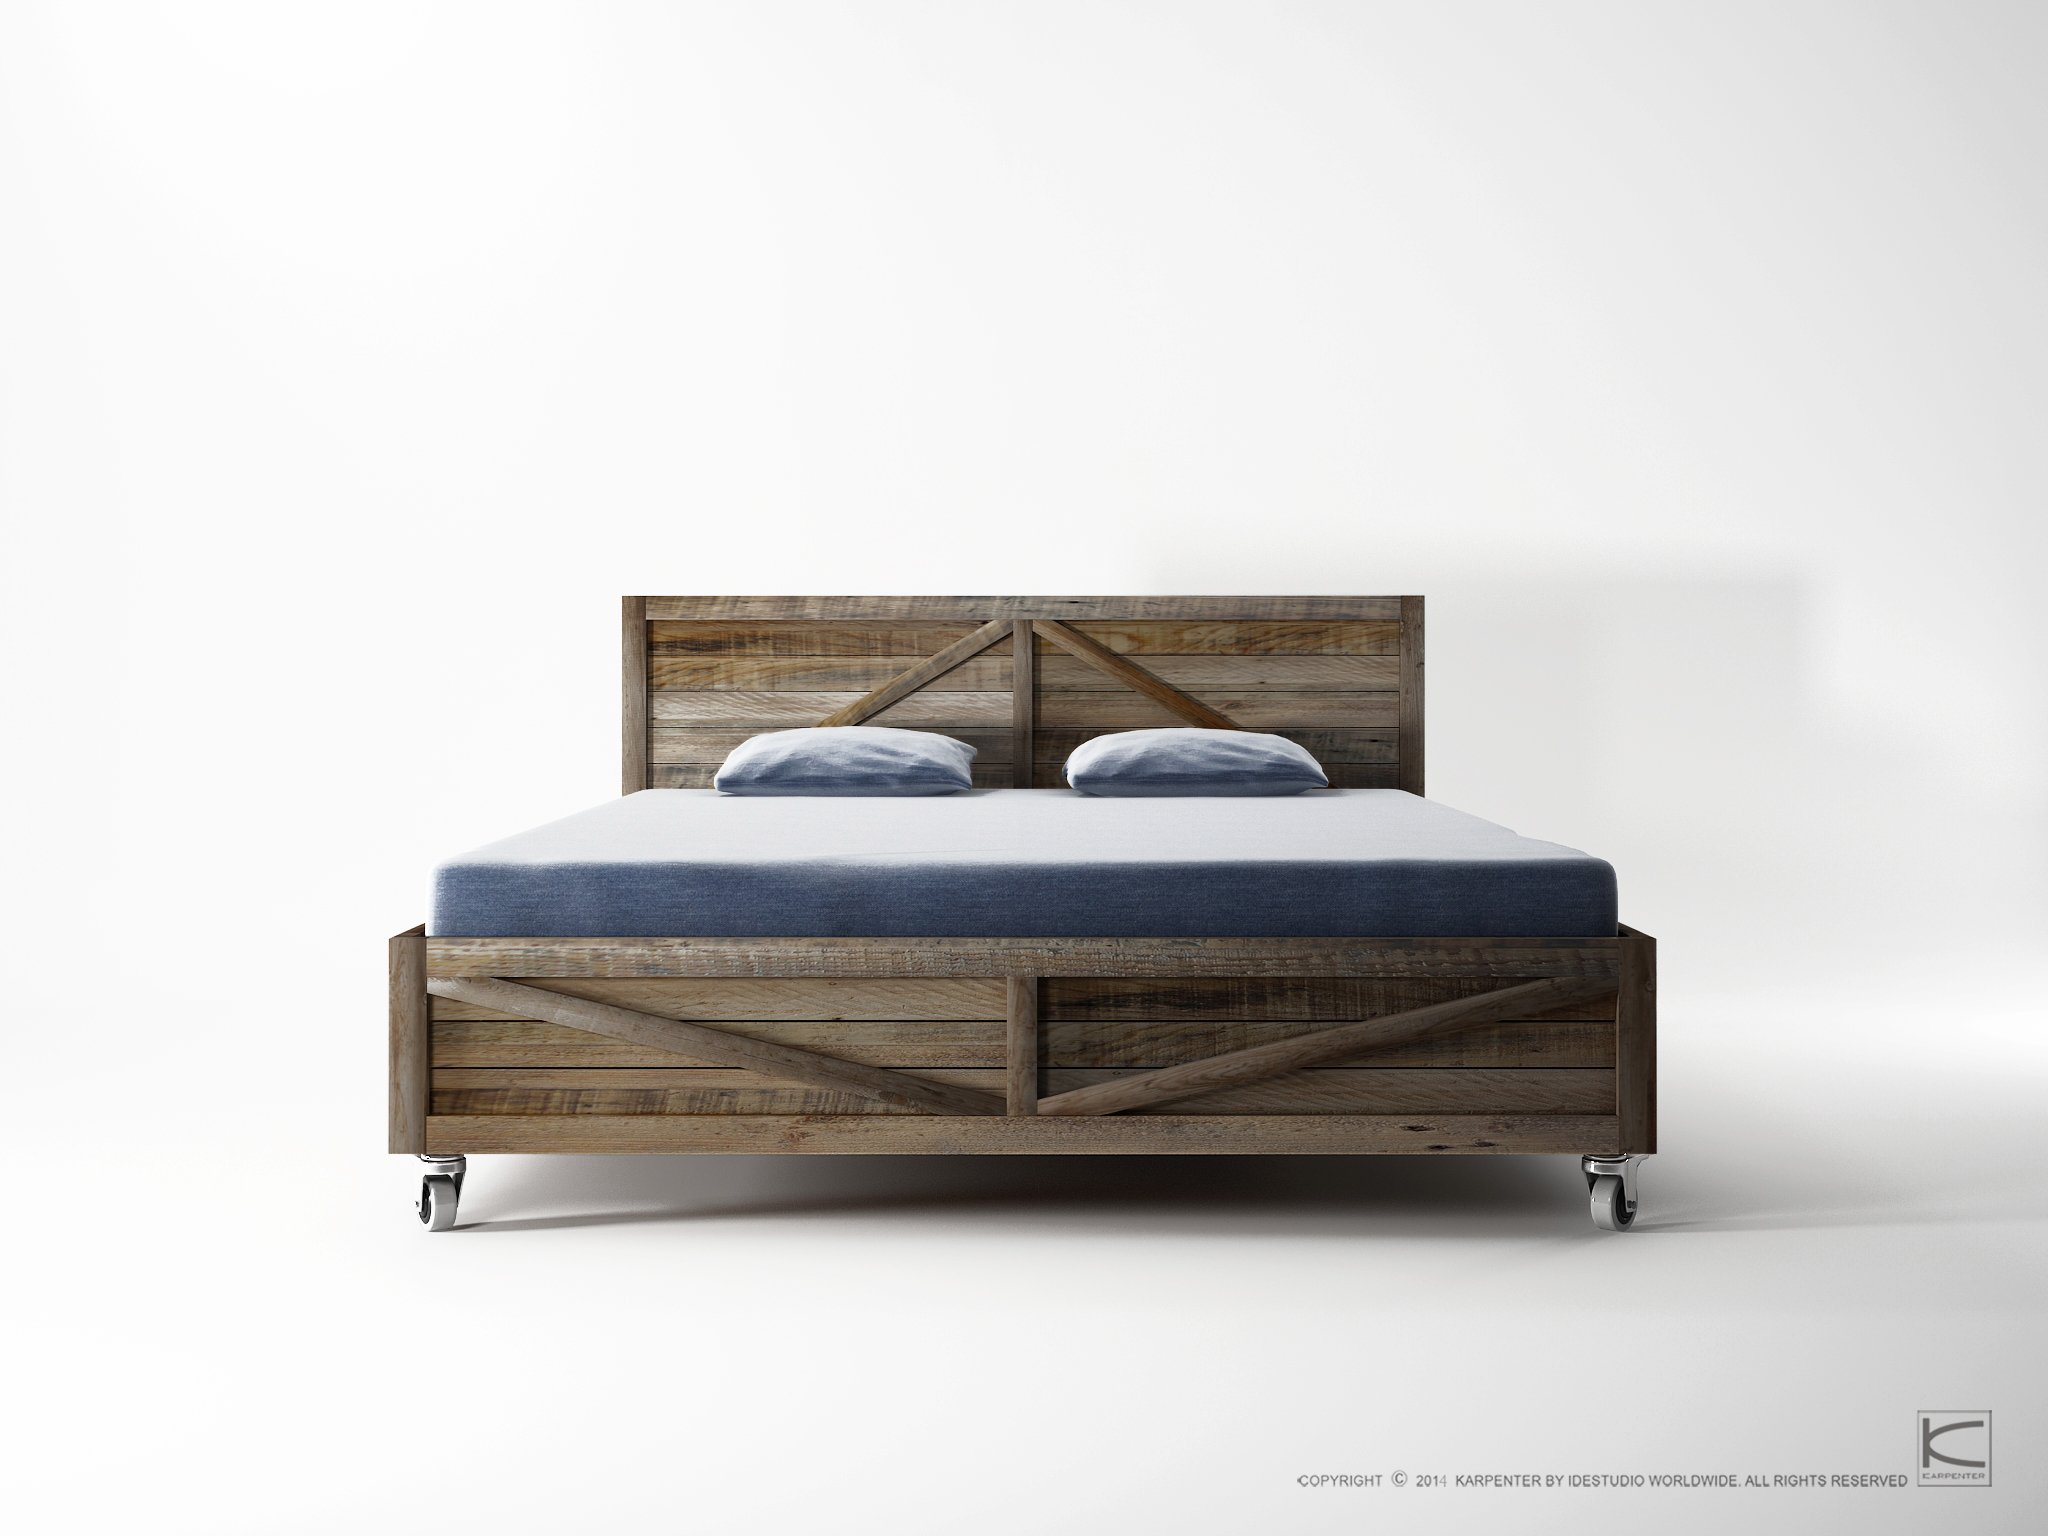 KRATE Letto queen size by KARPENTER